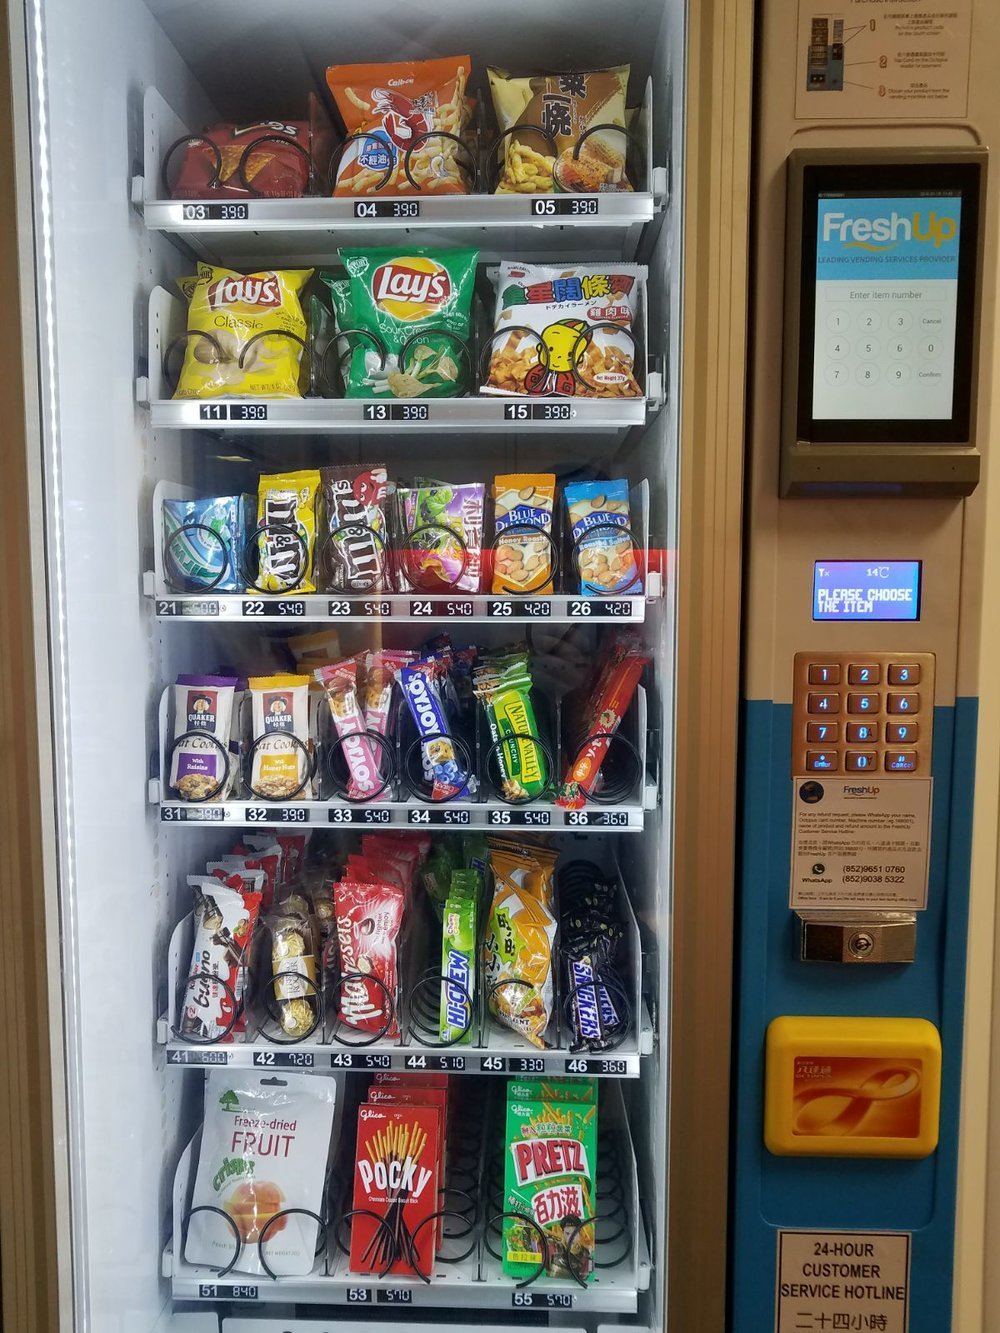 Freshup, vending machine hk, interactive, food, beverage, smart retail, convenient, vending services, JLL, housing estates